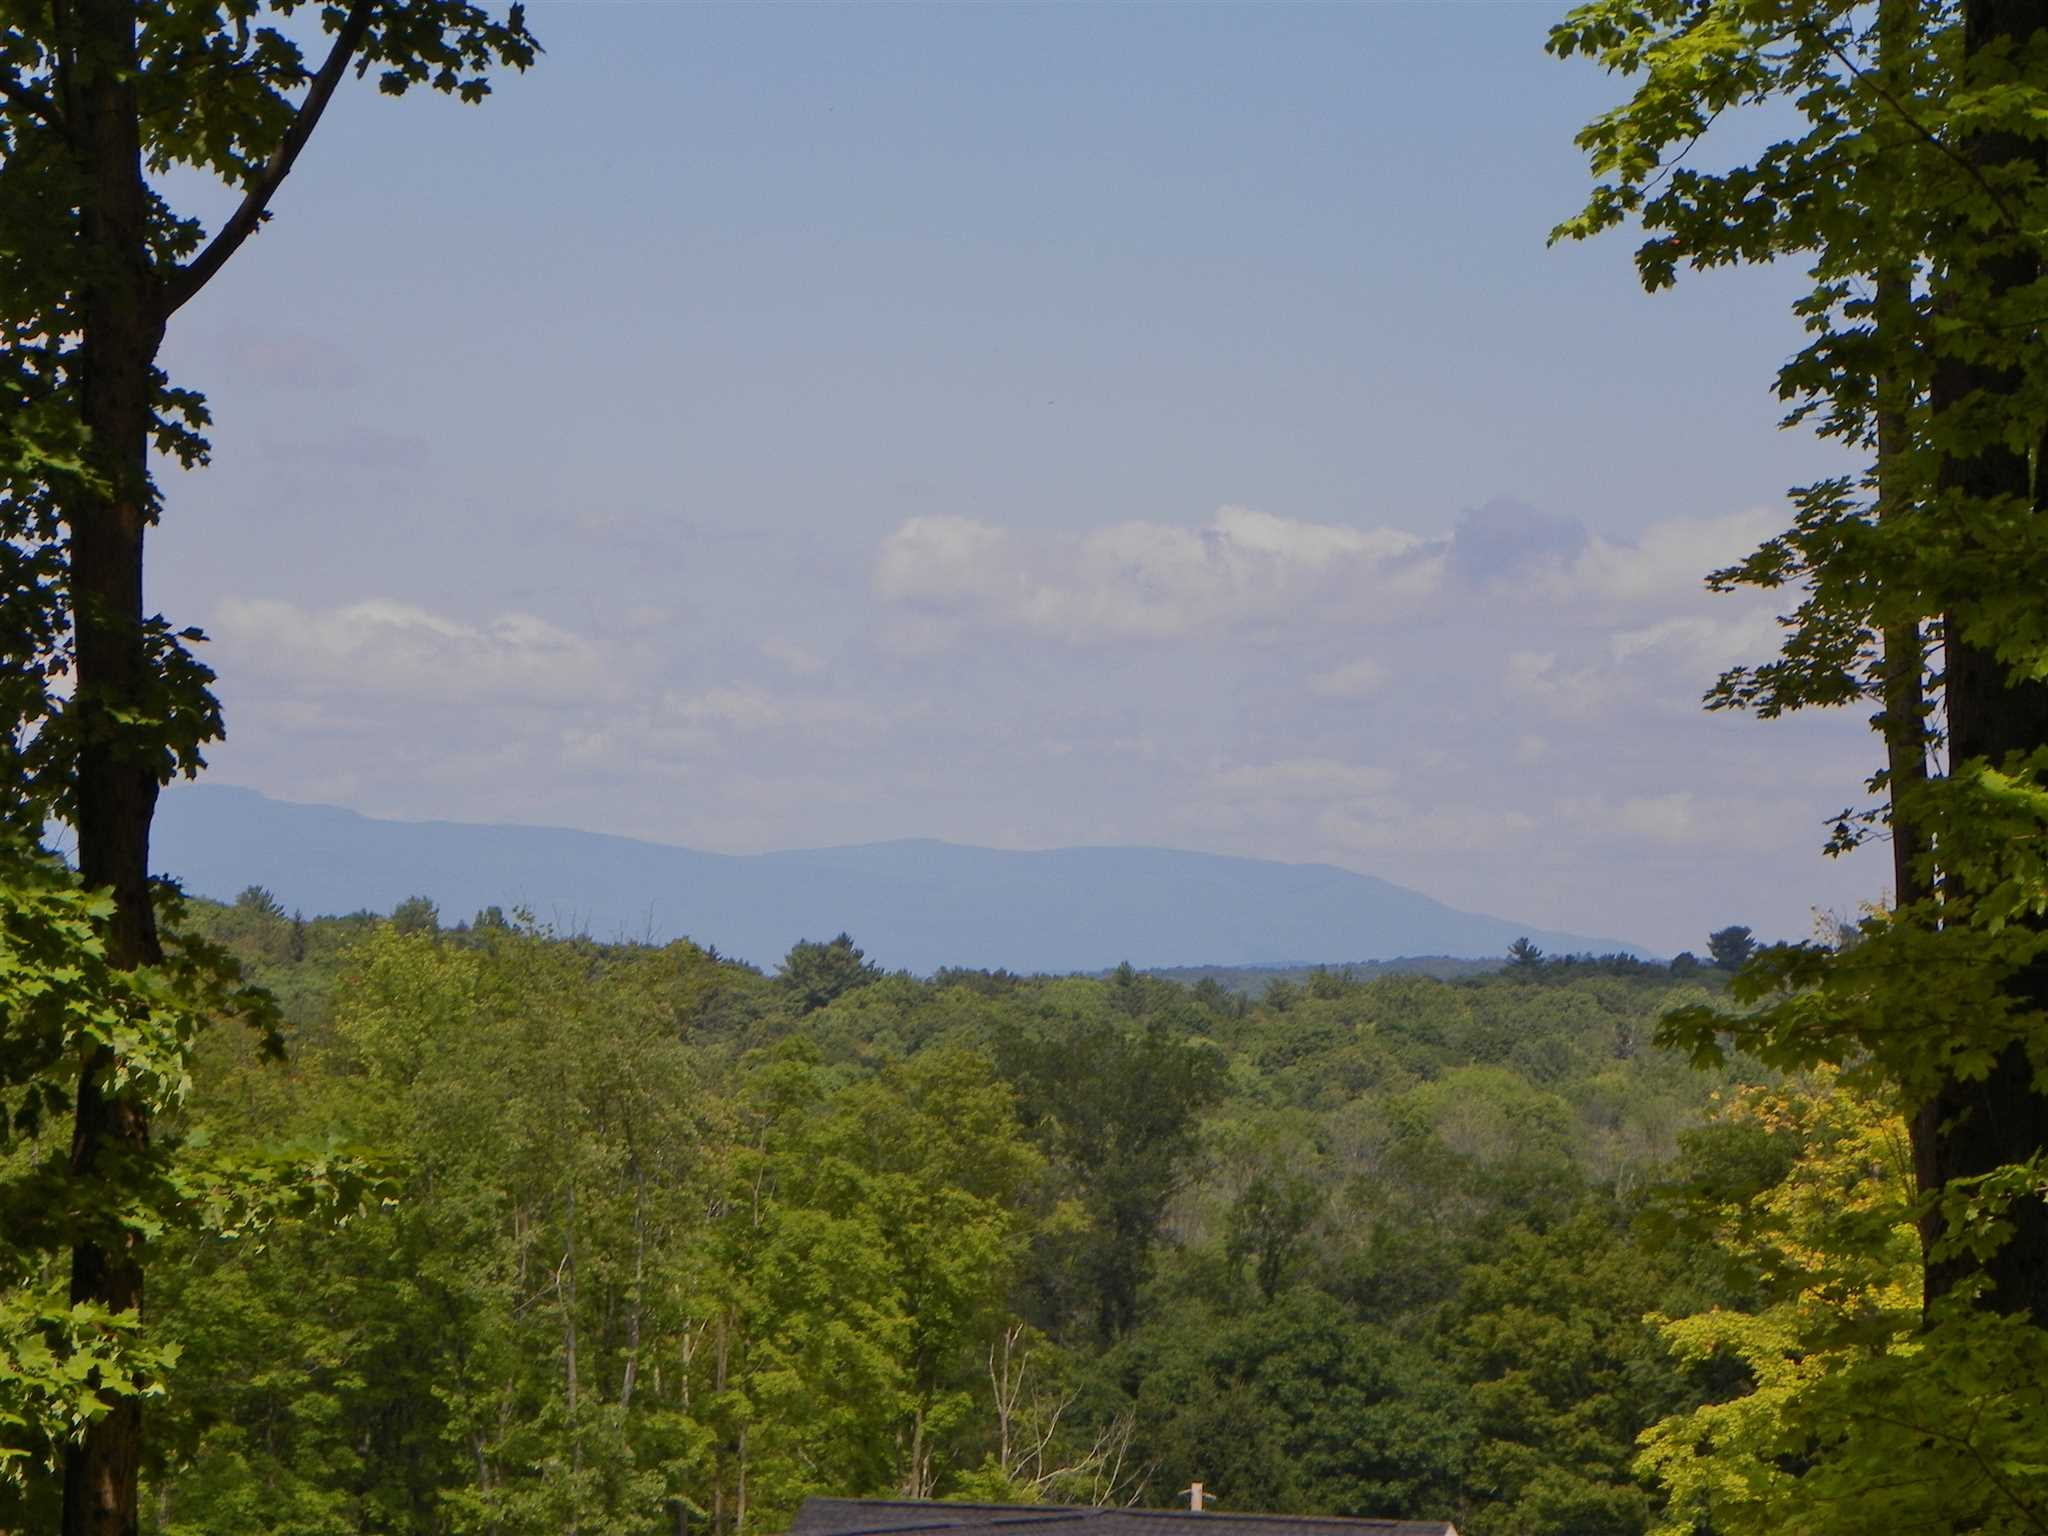 Land for Sale at LOT 4 POND VIEW LOT 4 POND VIEW Hyde Park, New York 12580 United States